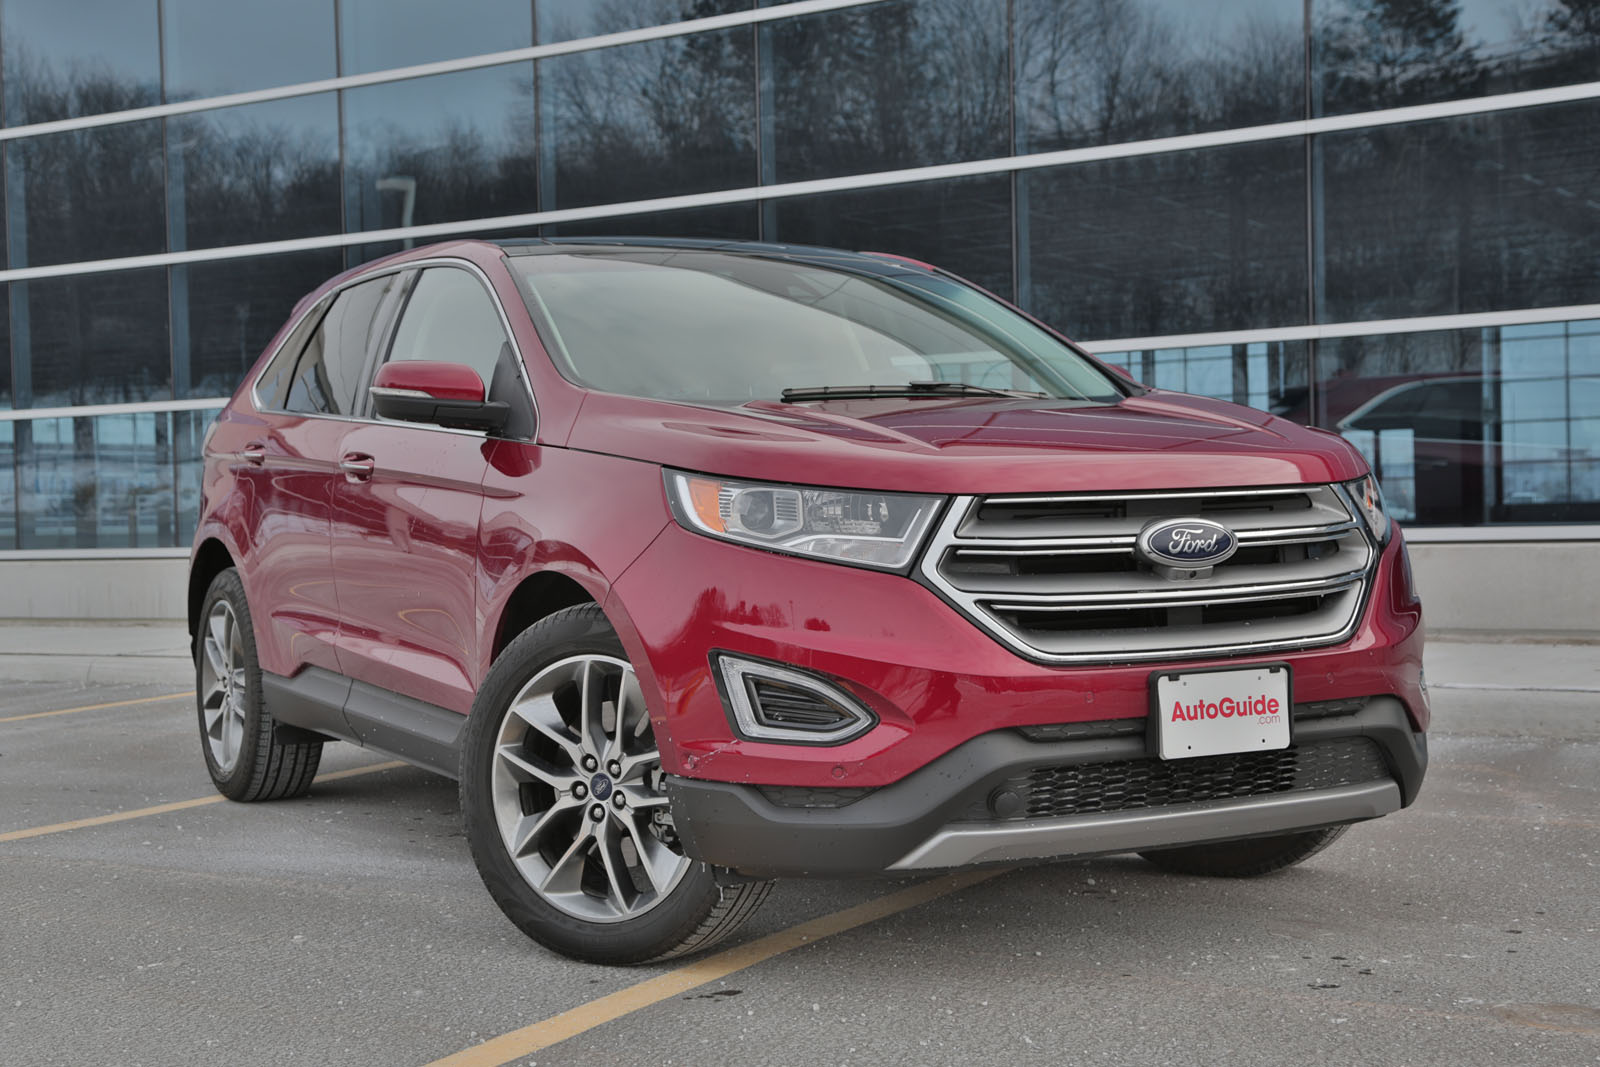 Ford Edge Cargo Space >> 2016 Ford Edge vs 2016 Nissan Murano - AutoGuide.com News